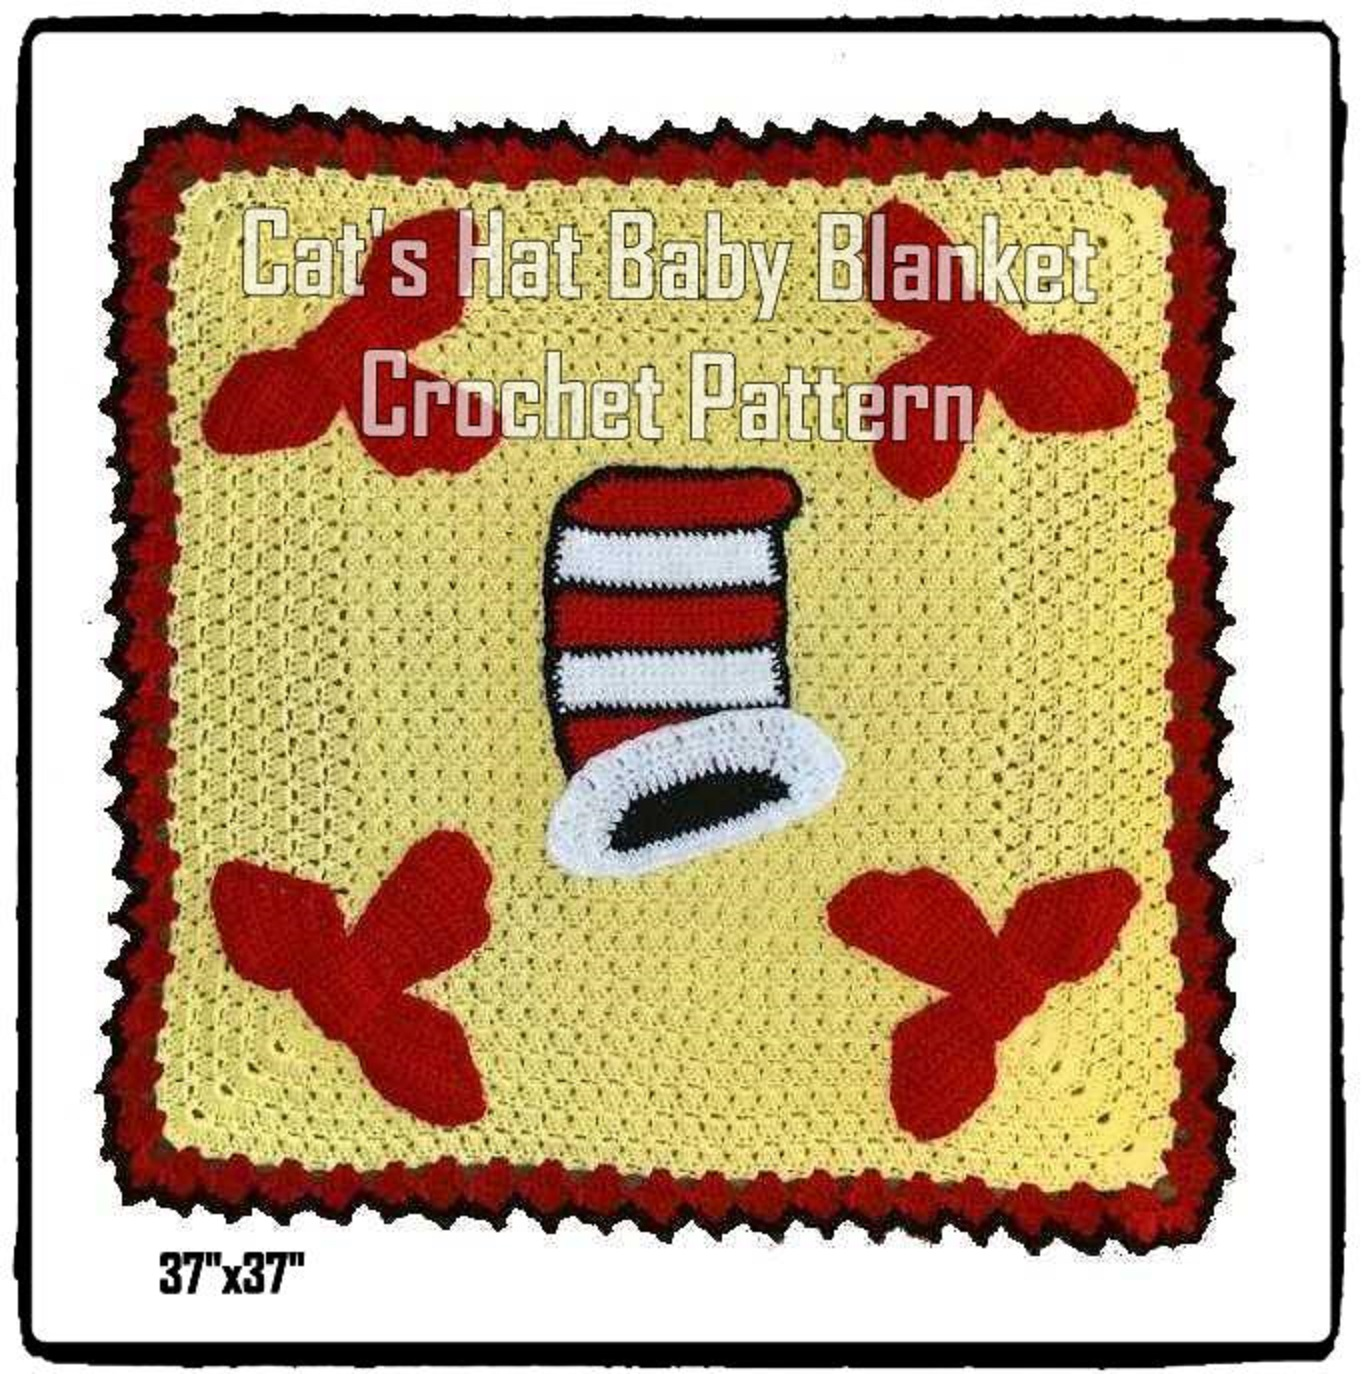 Cat's Hat Baby Blanket Crochet Pattern